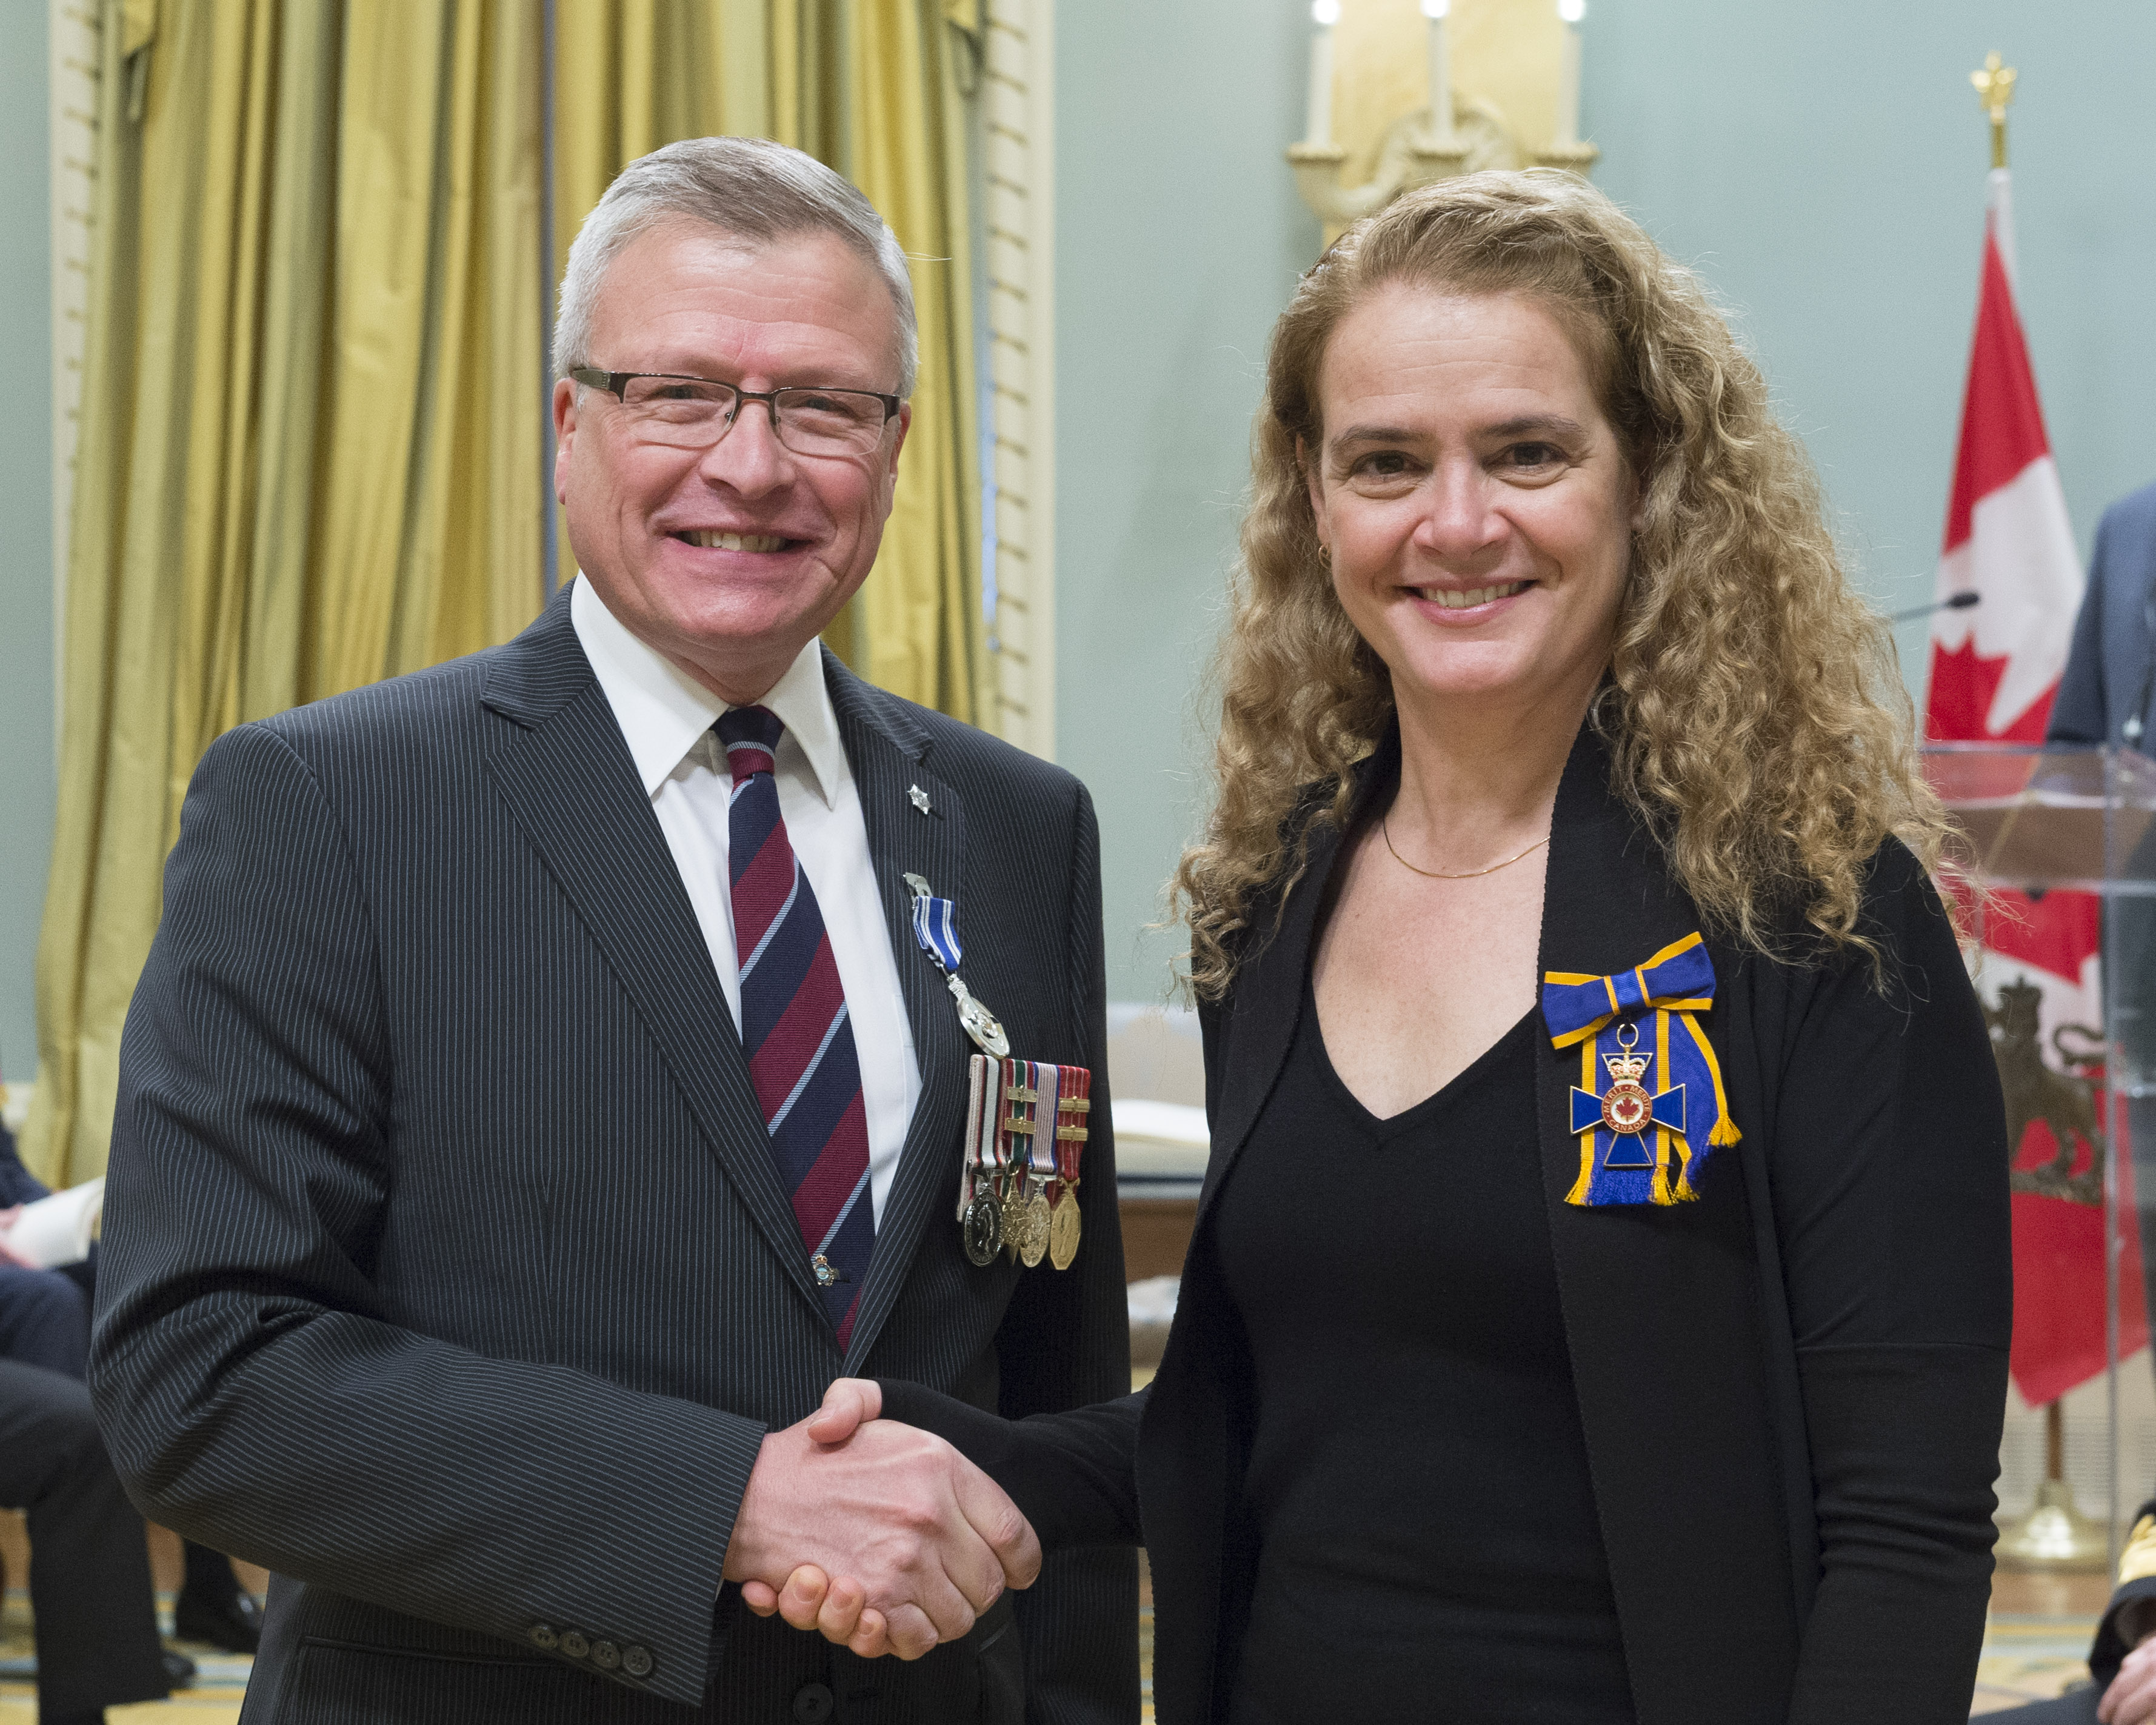 Brigadier-General Mark Alan Matheson receives the Meritorious Service Medal (Military Division) from Governor General and Commander-in-Chief of Canada Julie Payette on February 28, 2018. PHOTO: Sergeant Johanie Maheu, OSGG, GG05-2018-0066-040